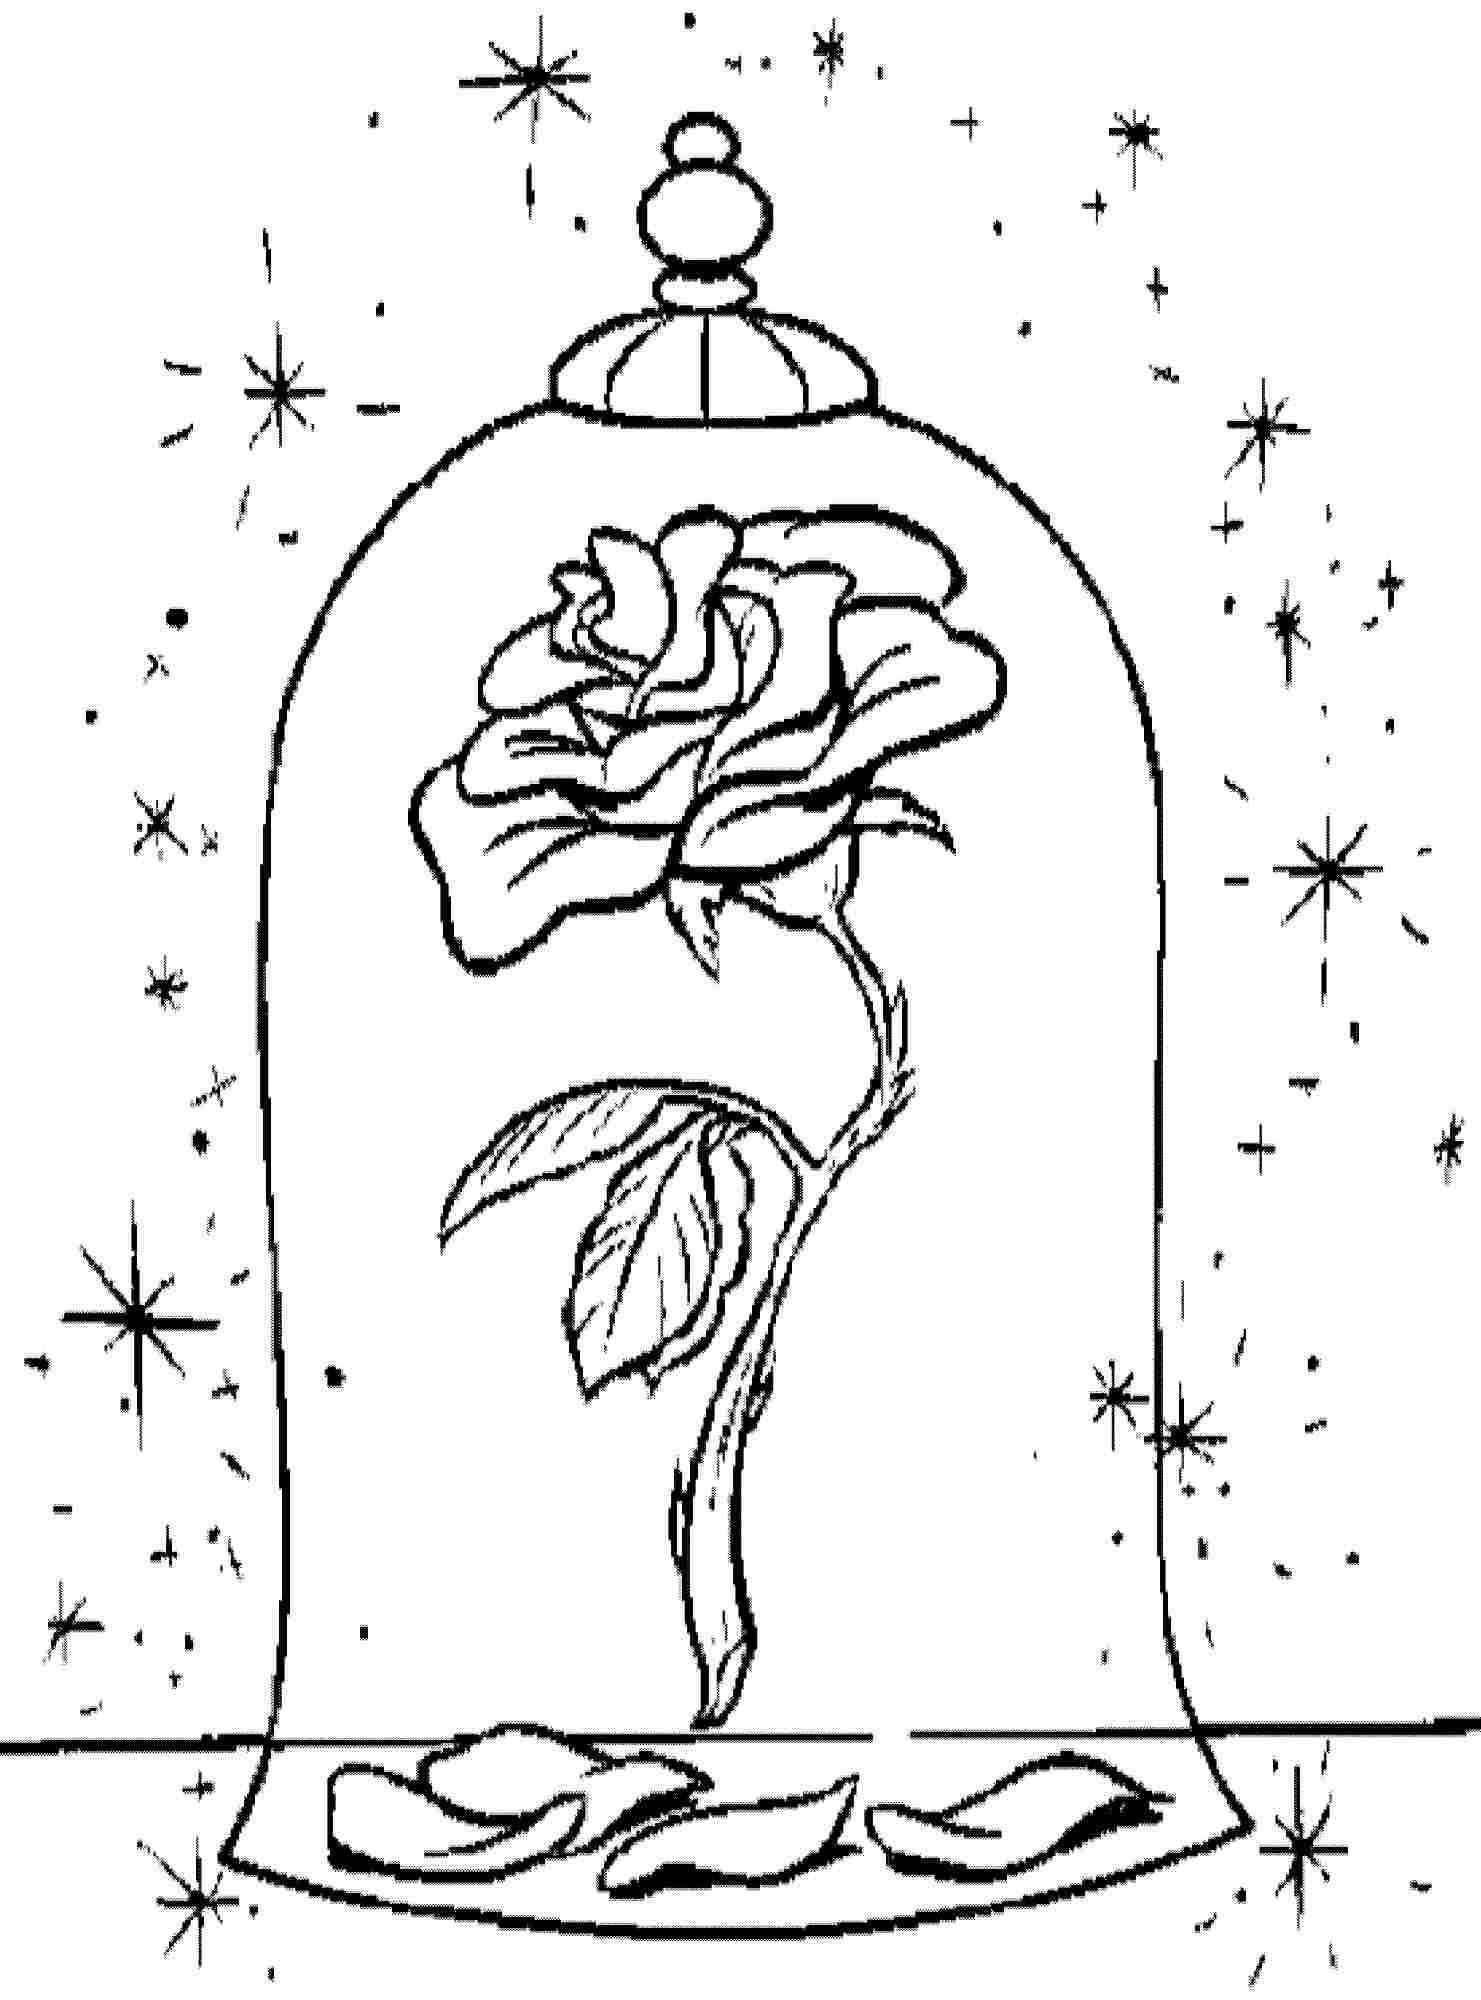 beauty and the beast coloring pages free Beauty And The Beast Rose Coloring Pages | Coloring Pages  beauty and the beast coloring pages free